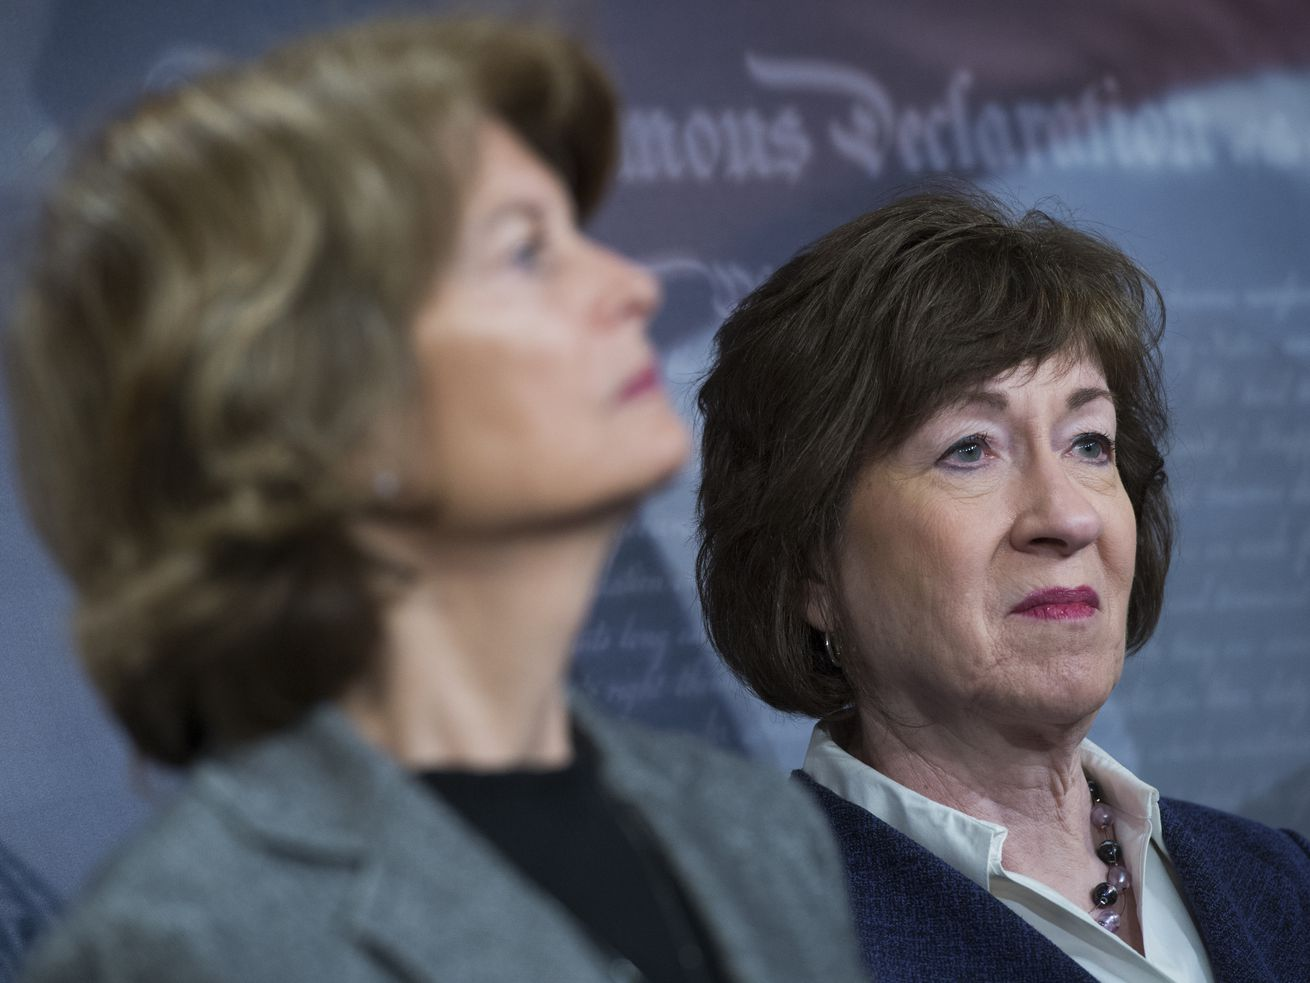 Sens. Lisa Murkowski (R-AK), left, and Susan Collins (R-ME). The two are considered pivotal votes in the upcoming Supreme Court confirmation process.